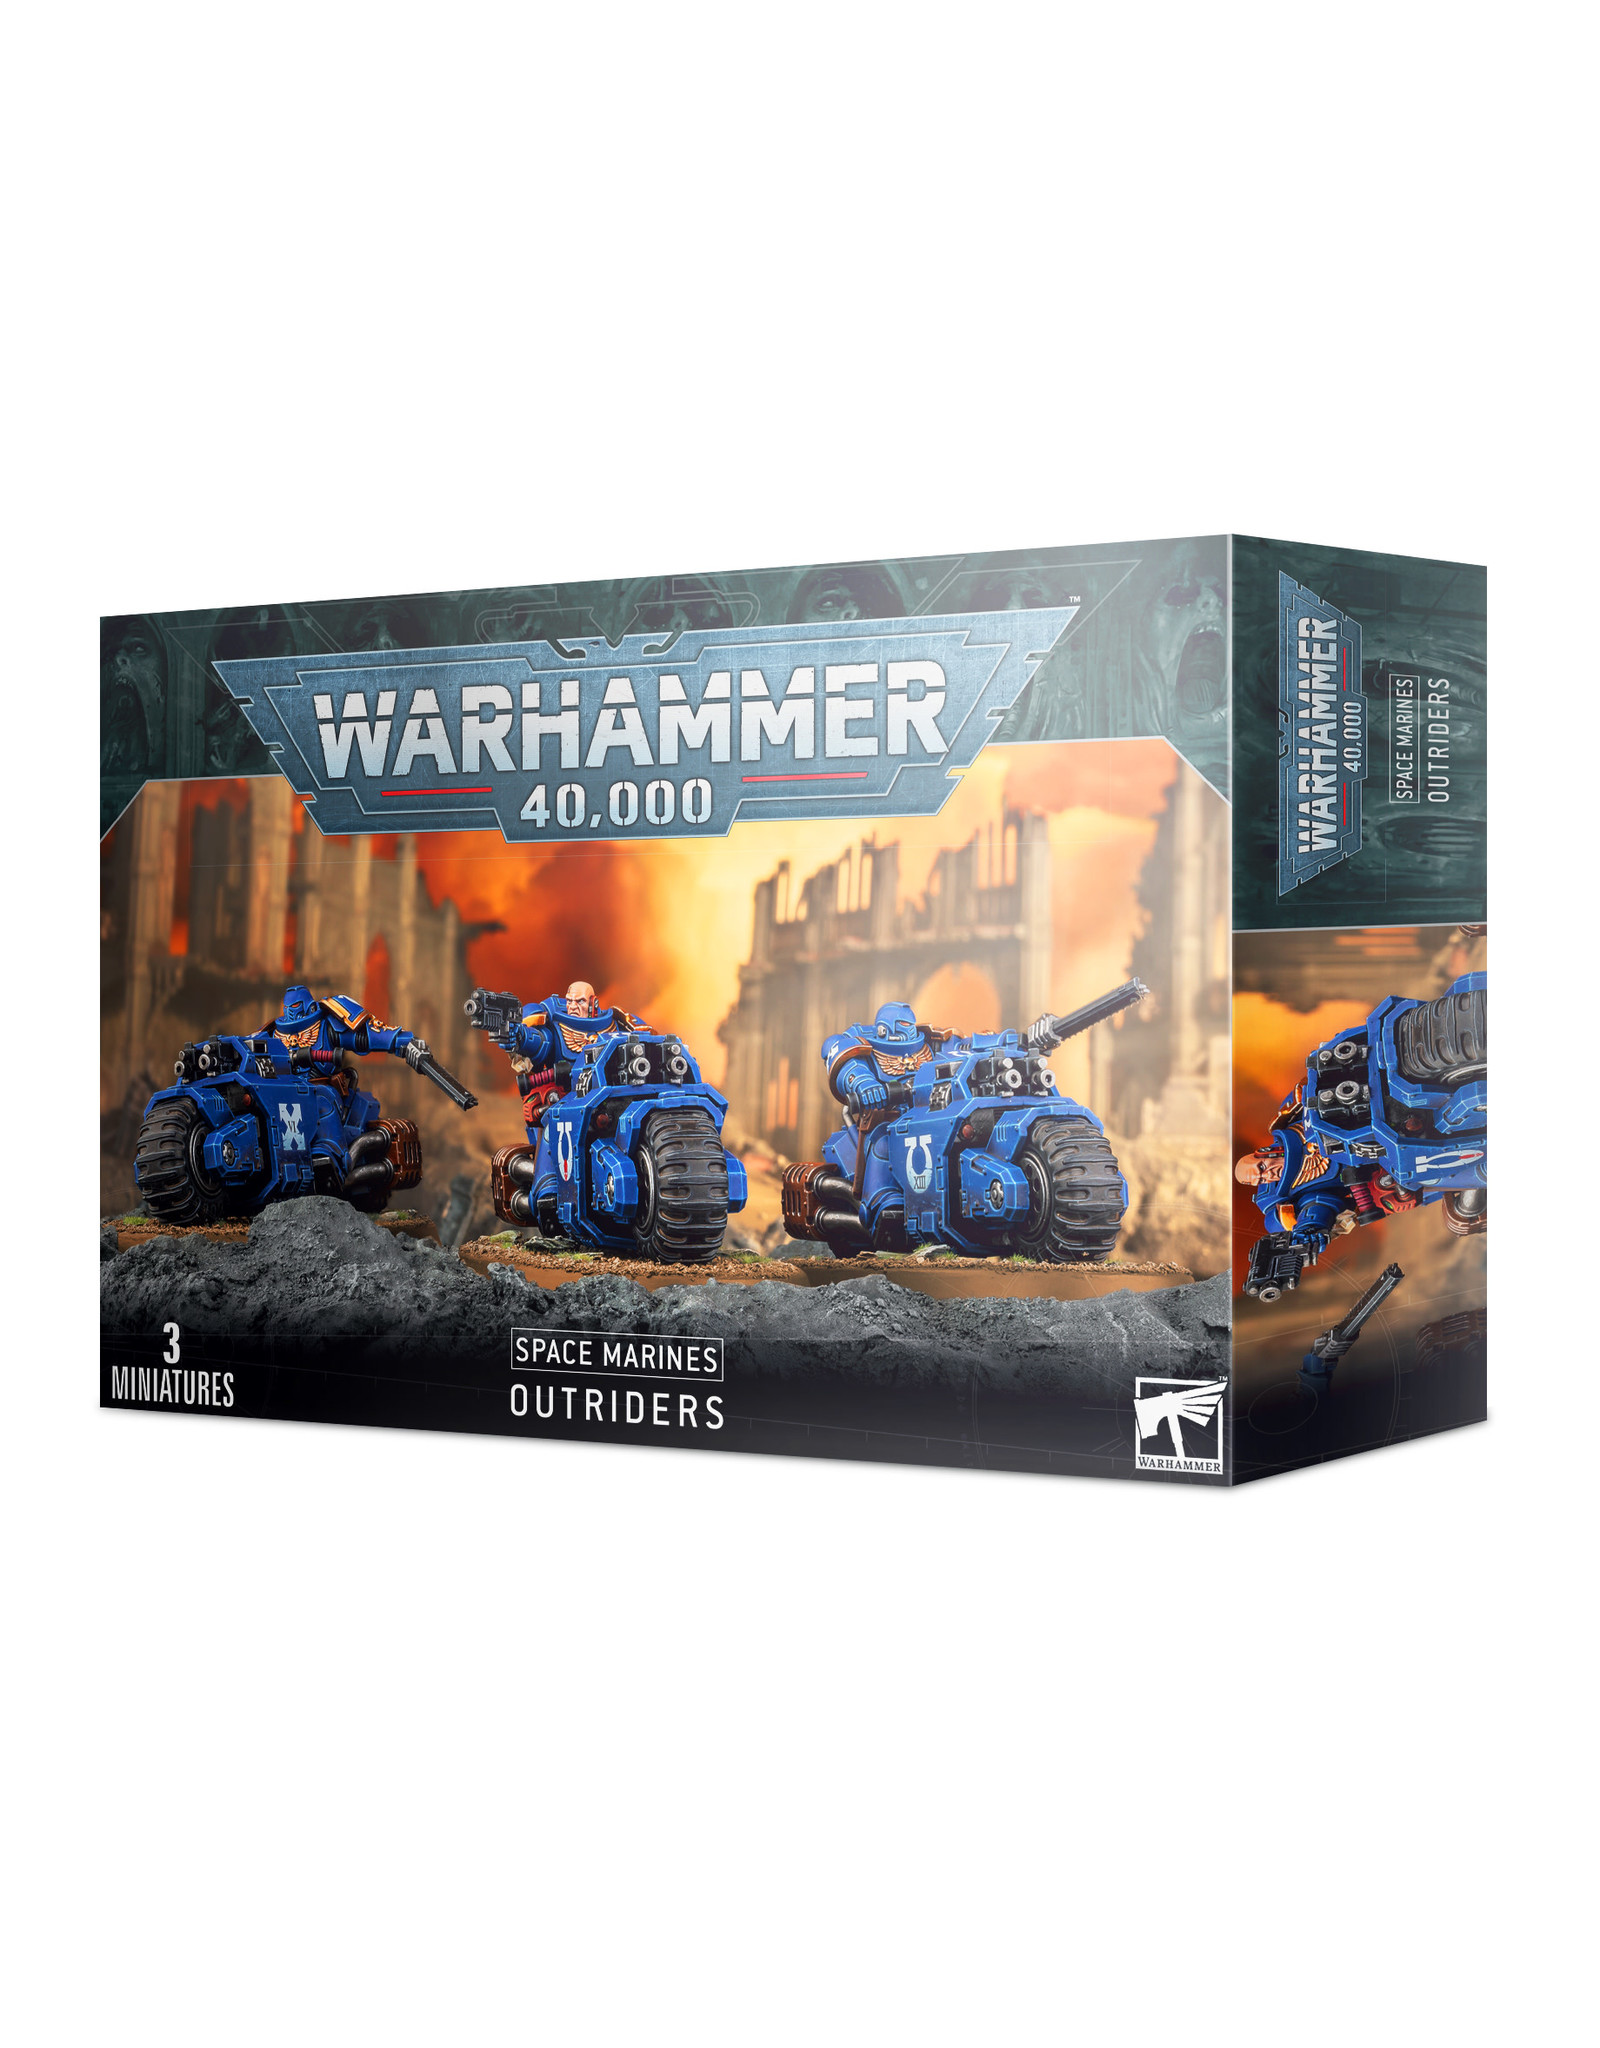 Warhammer 40,000 Space Marines: Outriders